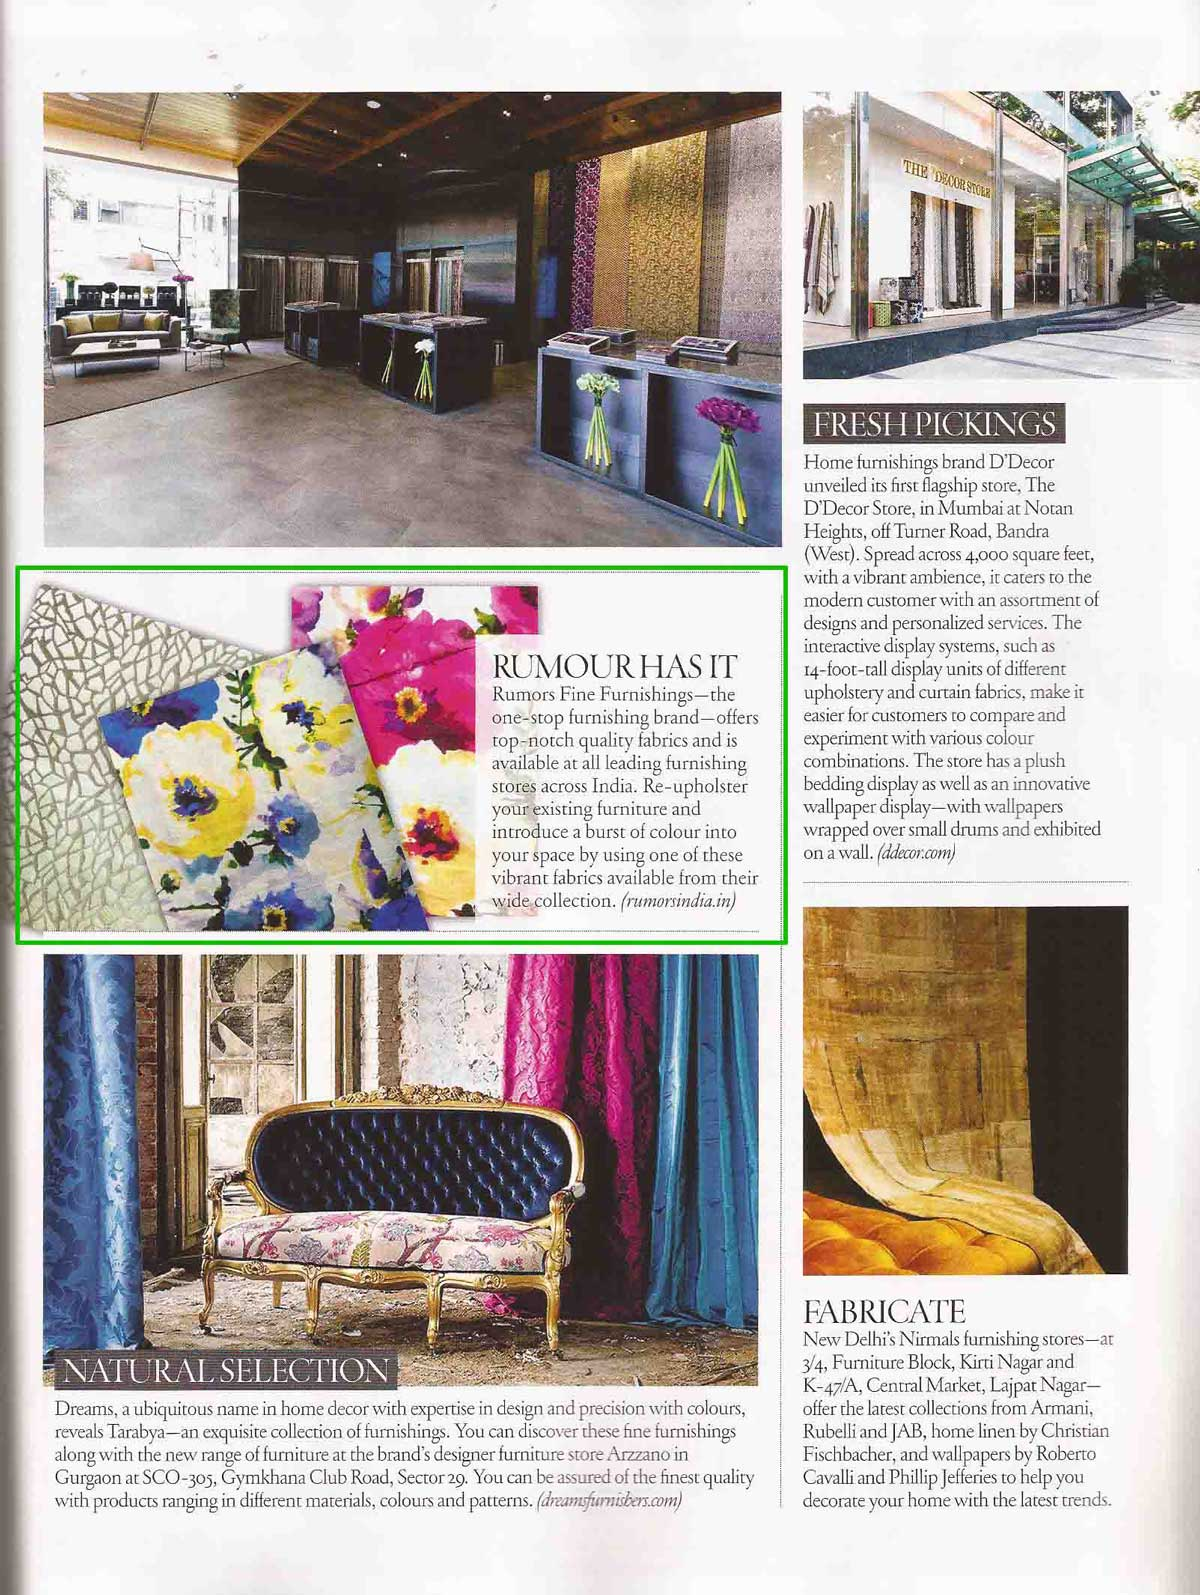 Rumors press Architectural Digest